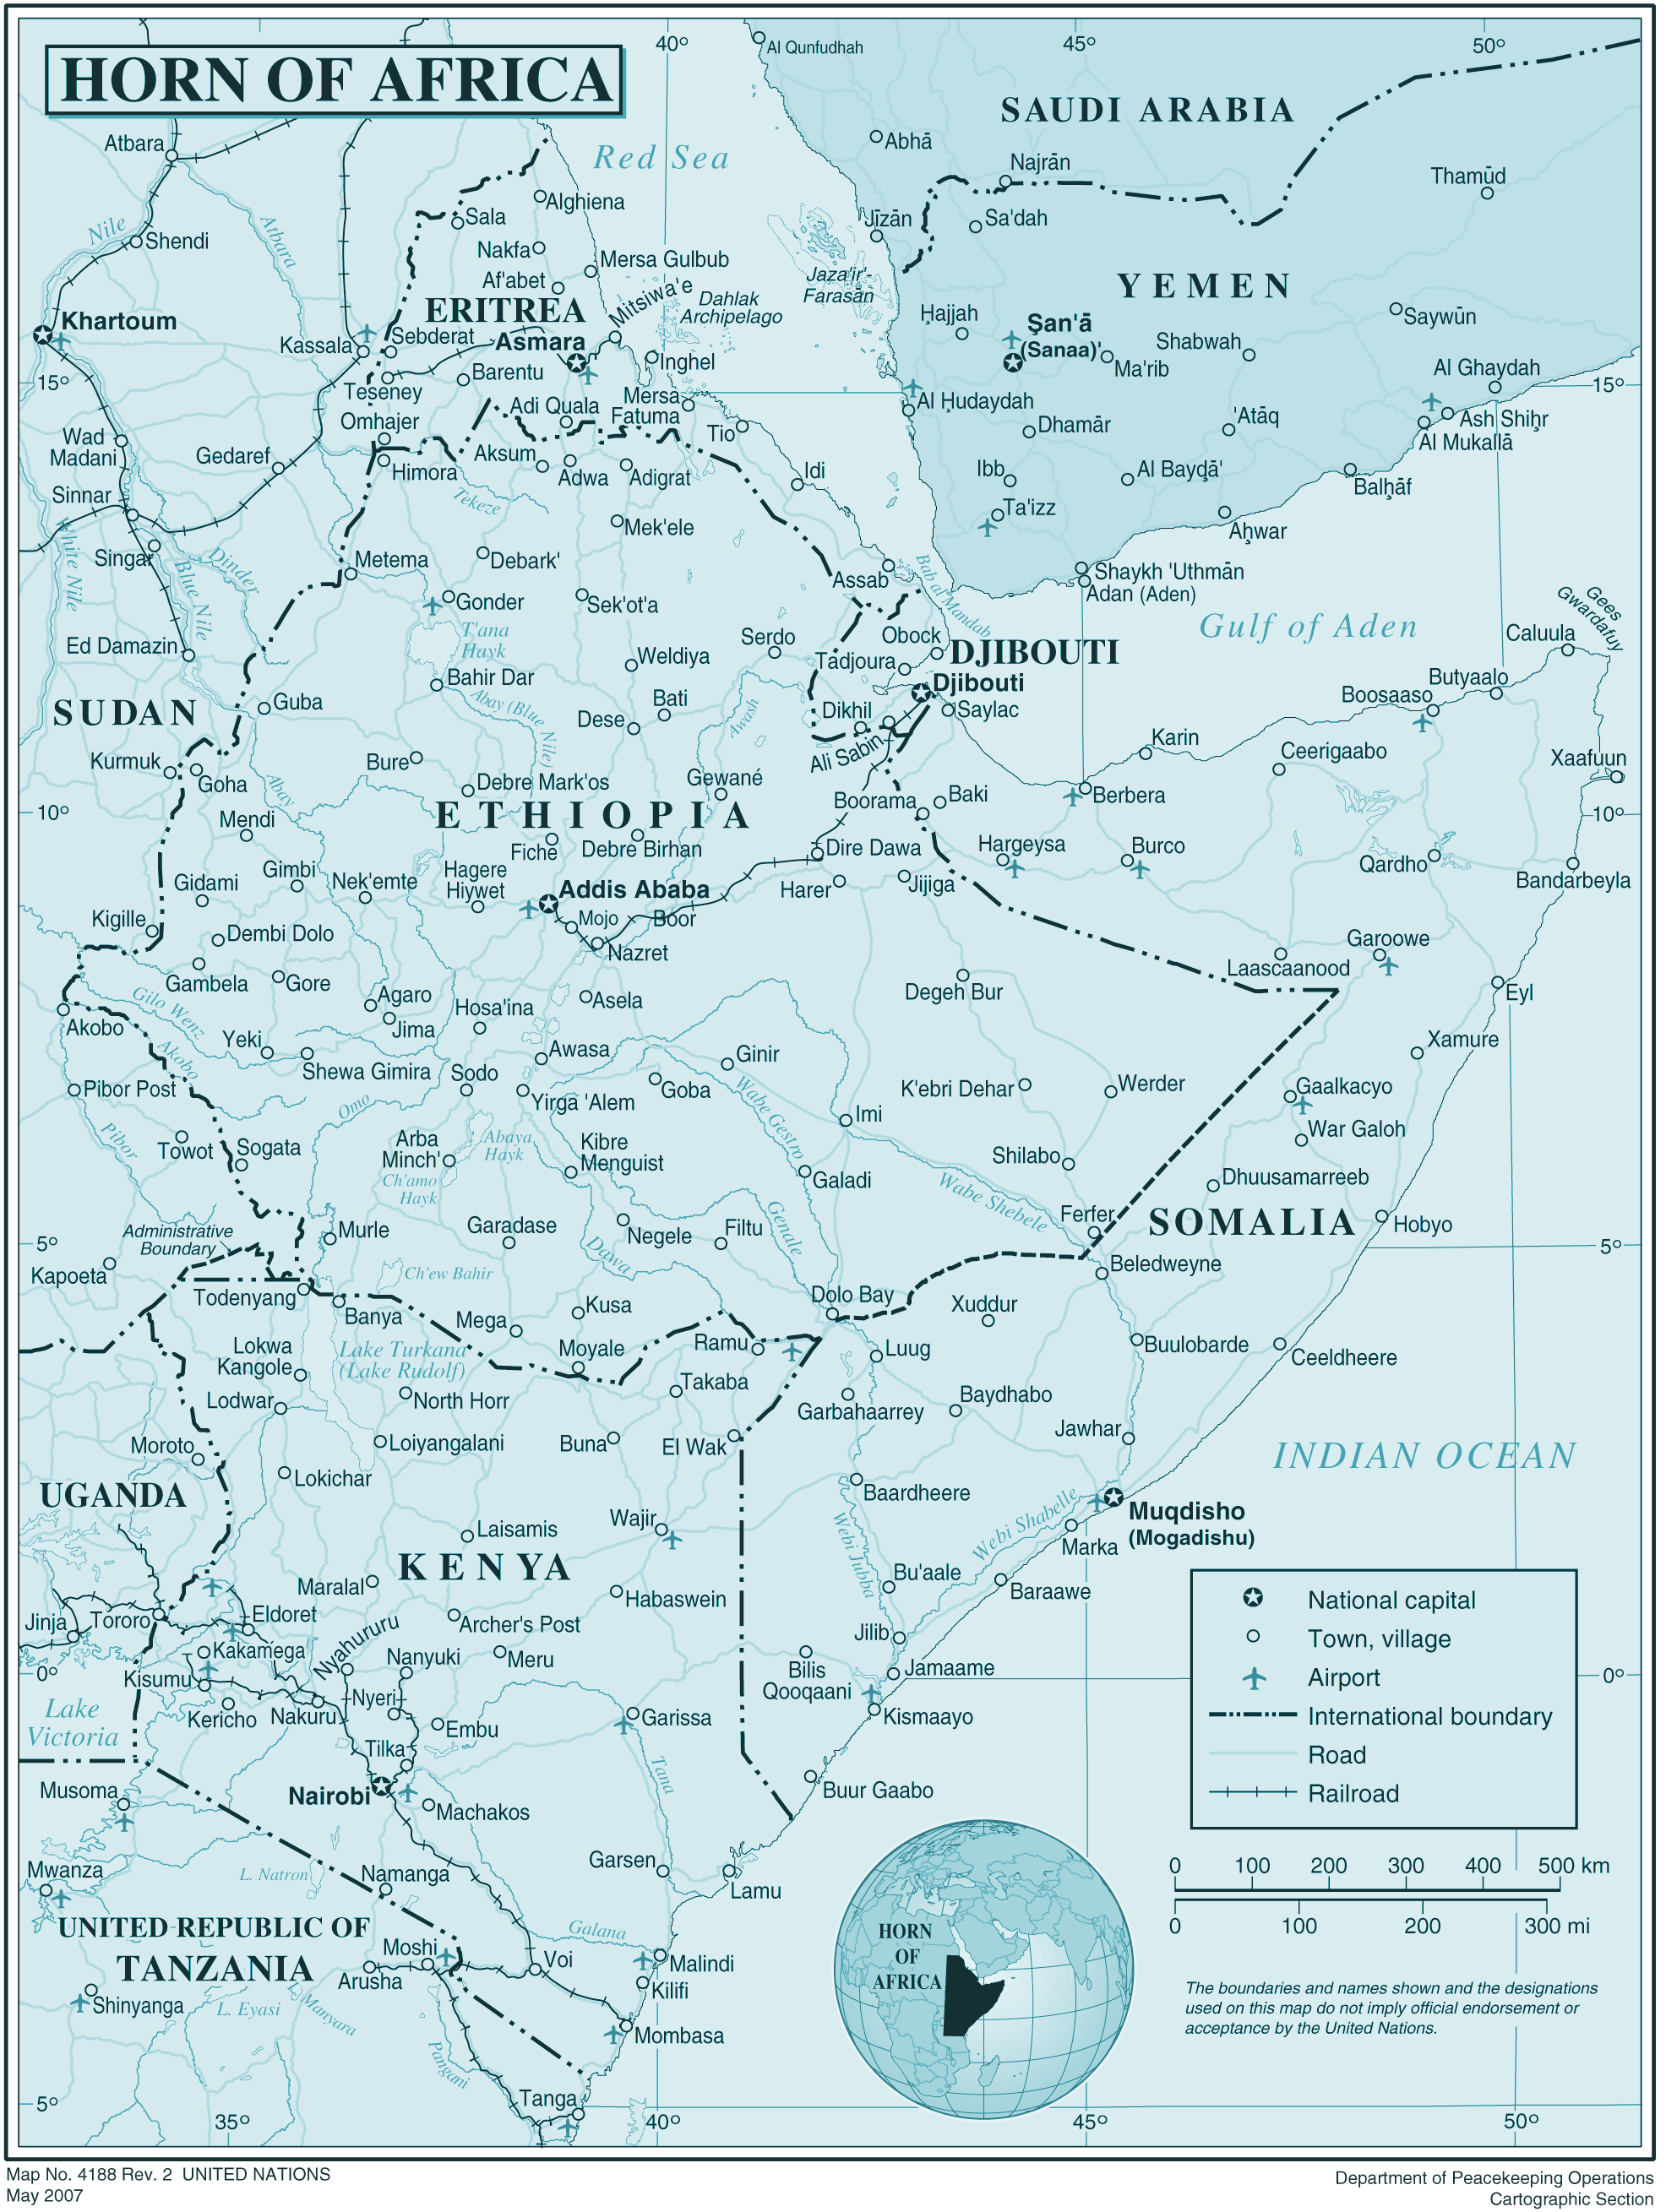 Horn of Africa large map